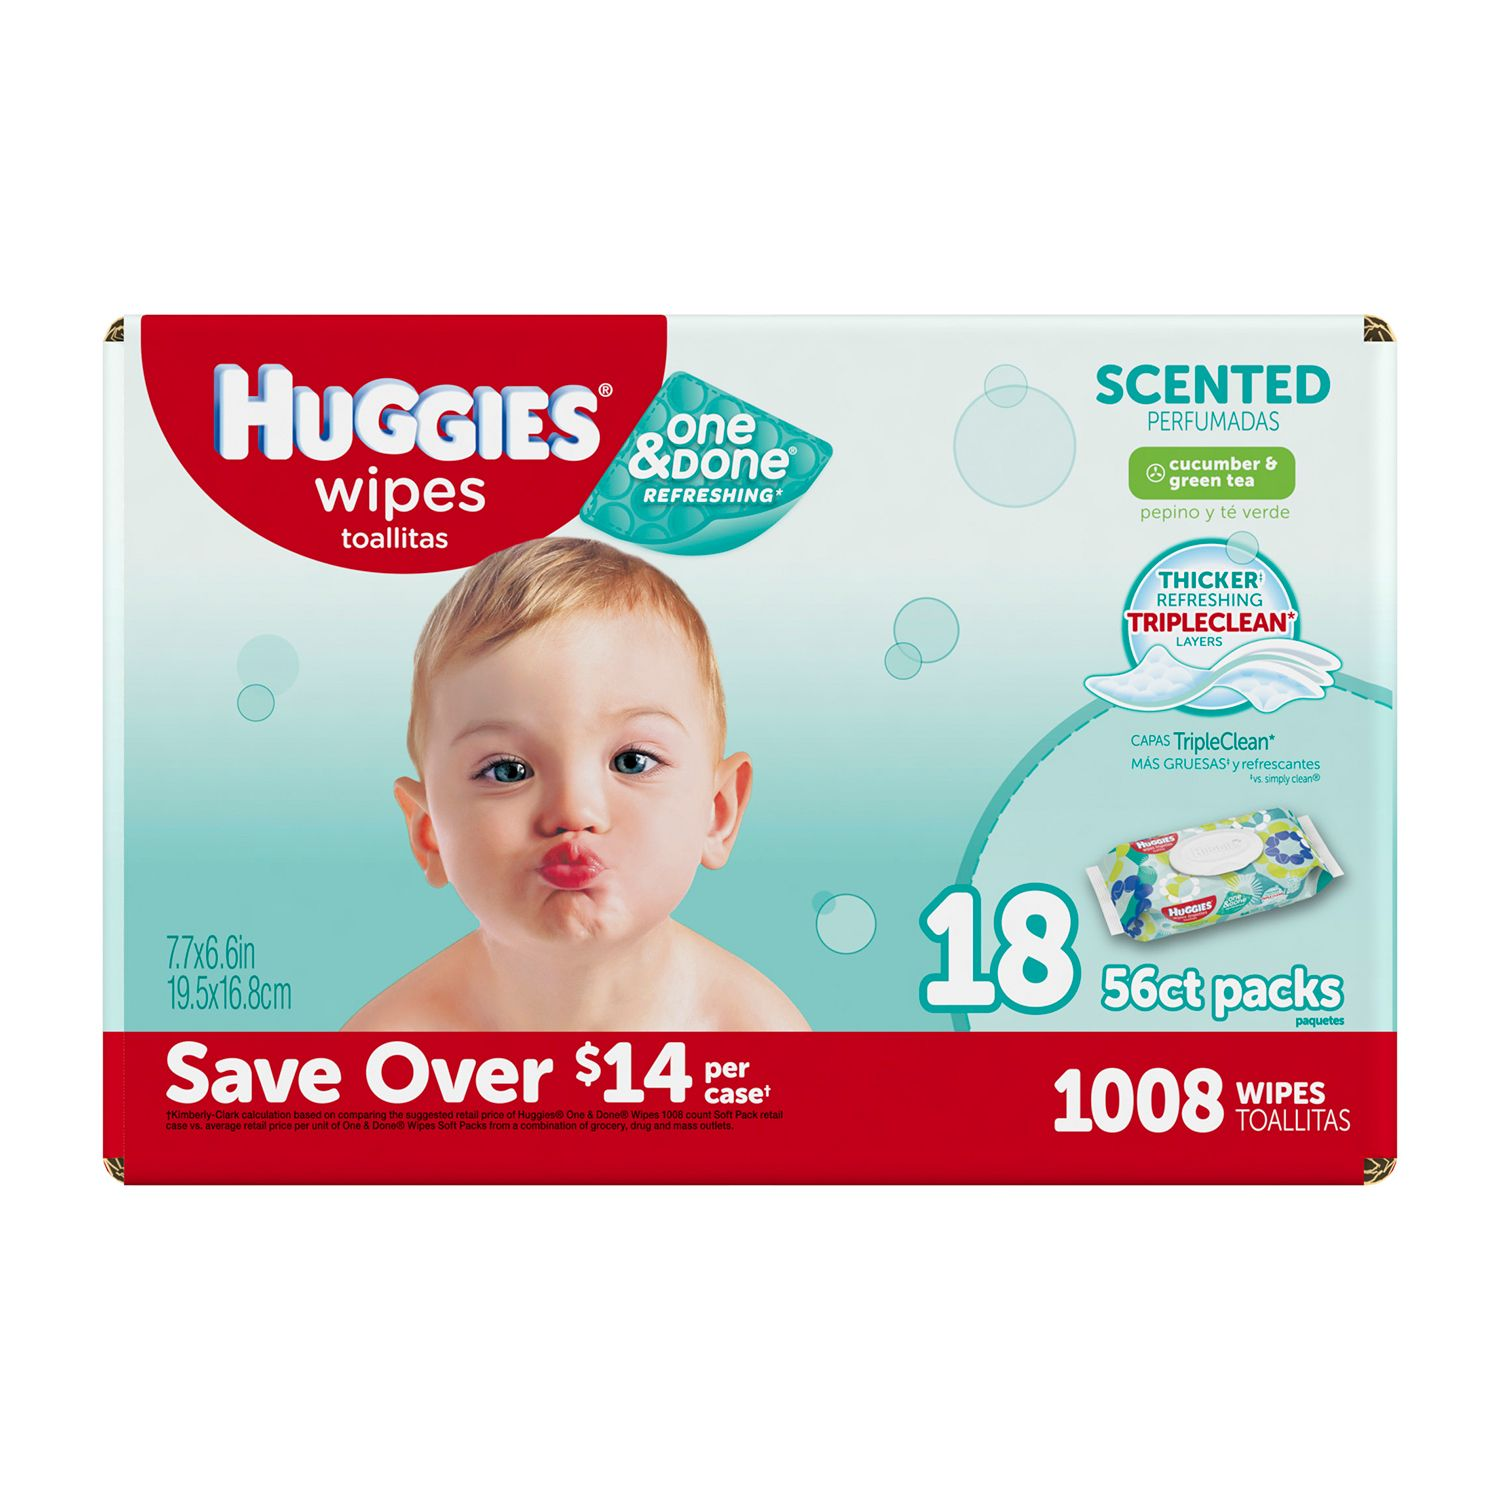 Huggies One & Done Refreshing Baby Wipes, Scented (1,008 ct.) by